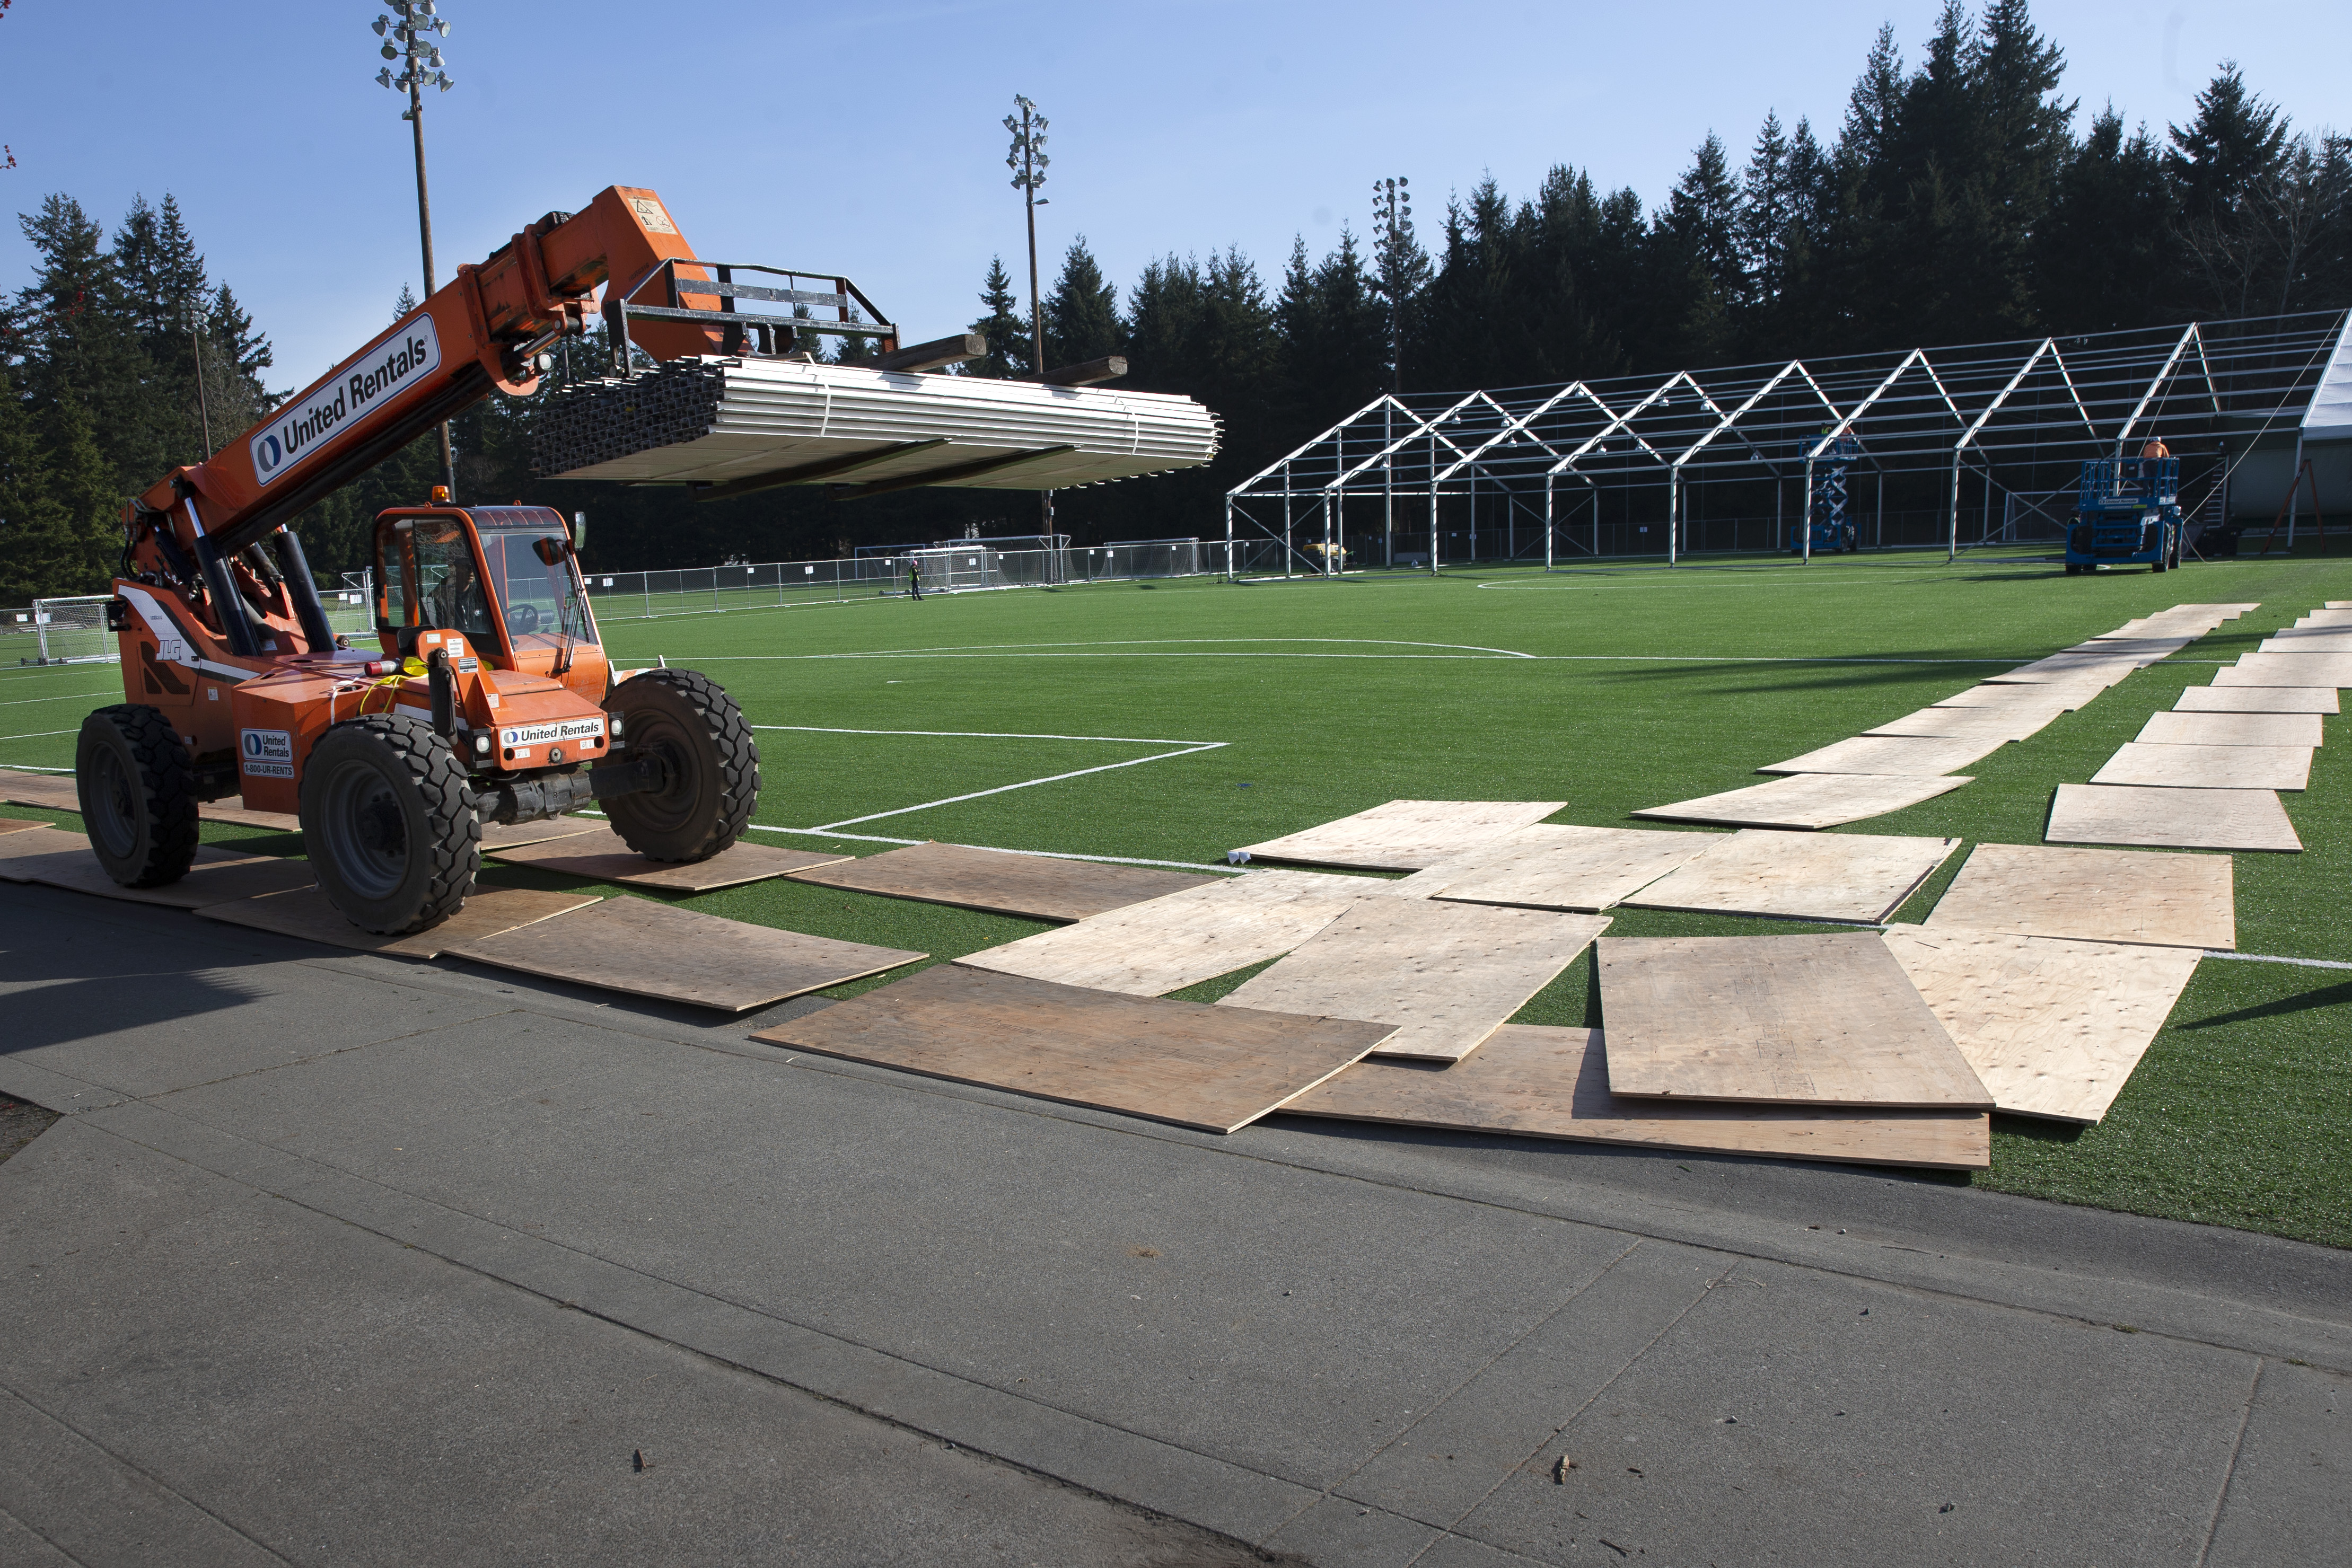 SHORELINE, WA - MARCH 19: Workers build a temporary field hospital on a soccer field for people ill with the novel coronavirus so they can isolate and recover on March 19, 2020 in Shoreline, Washington. (Photo by Karen Ducey/Getty Images)